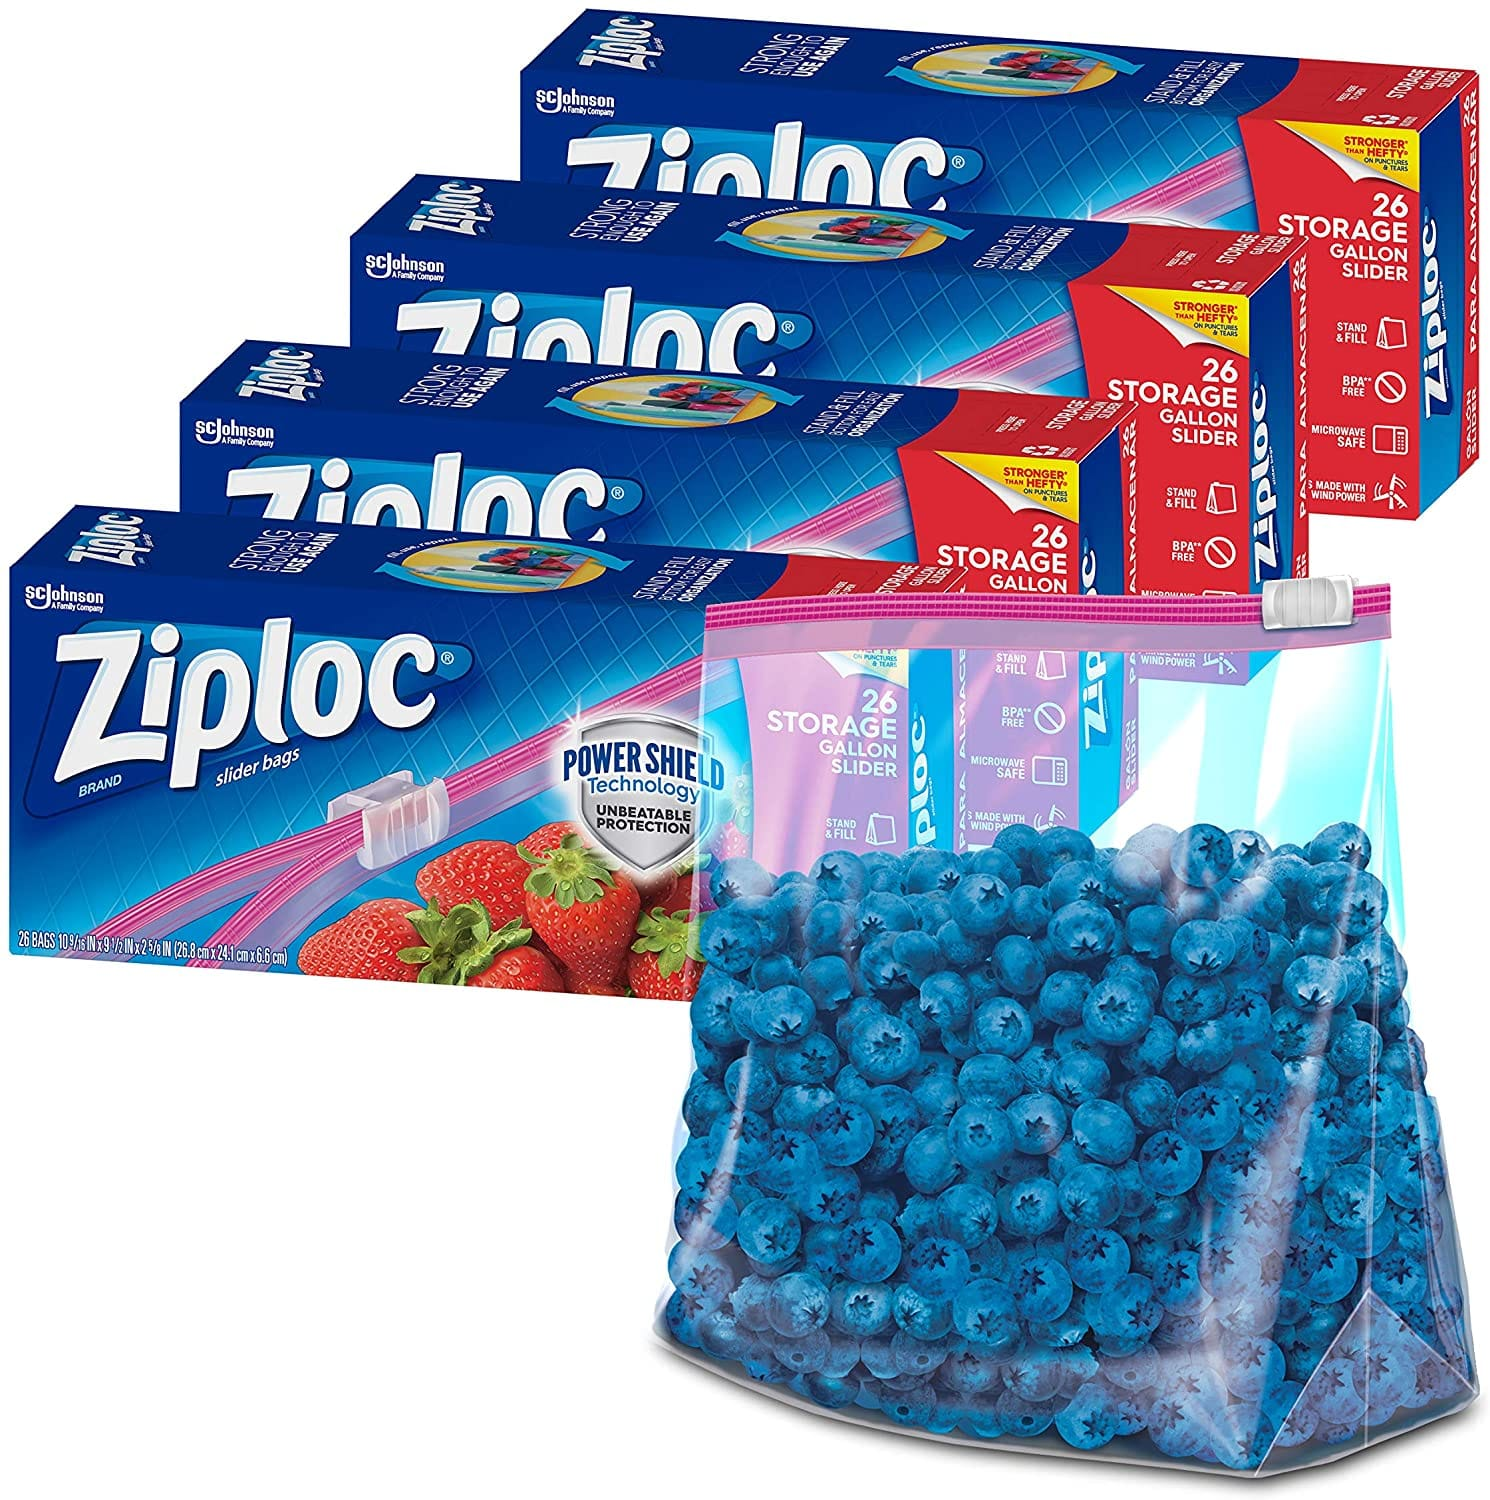 Ziploc Slider Storage Bags with New Power Shield Technology, For Food, Sandwich, Organization and More, Gallon, 26 Count, Pack of 4 (104 Total Bags) $12.49